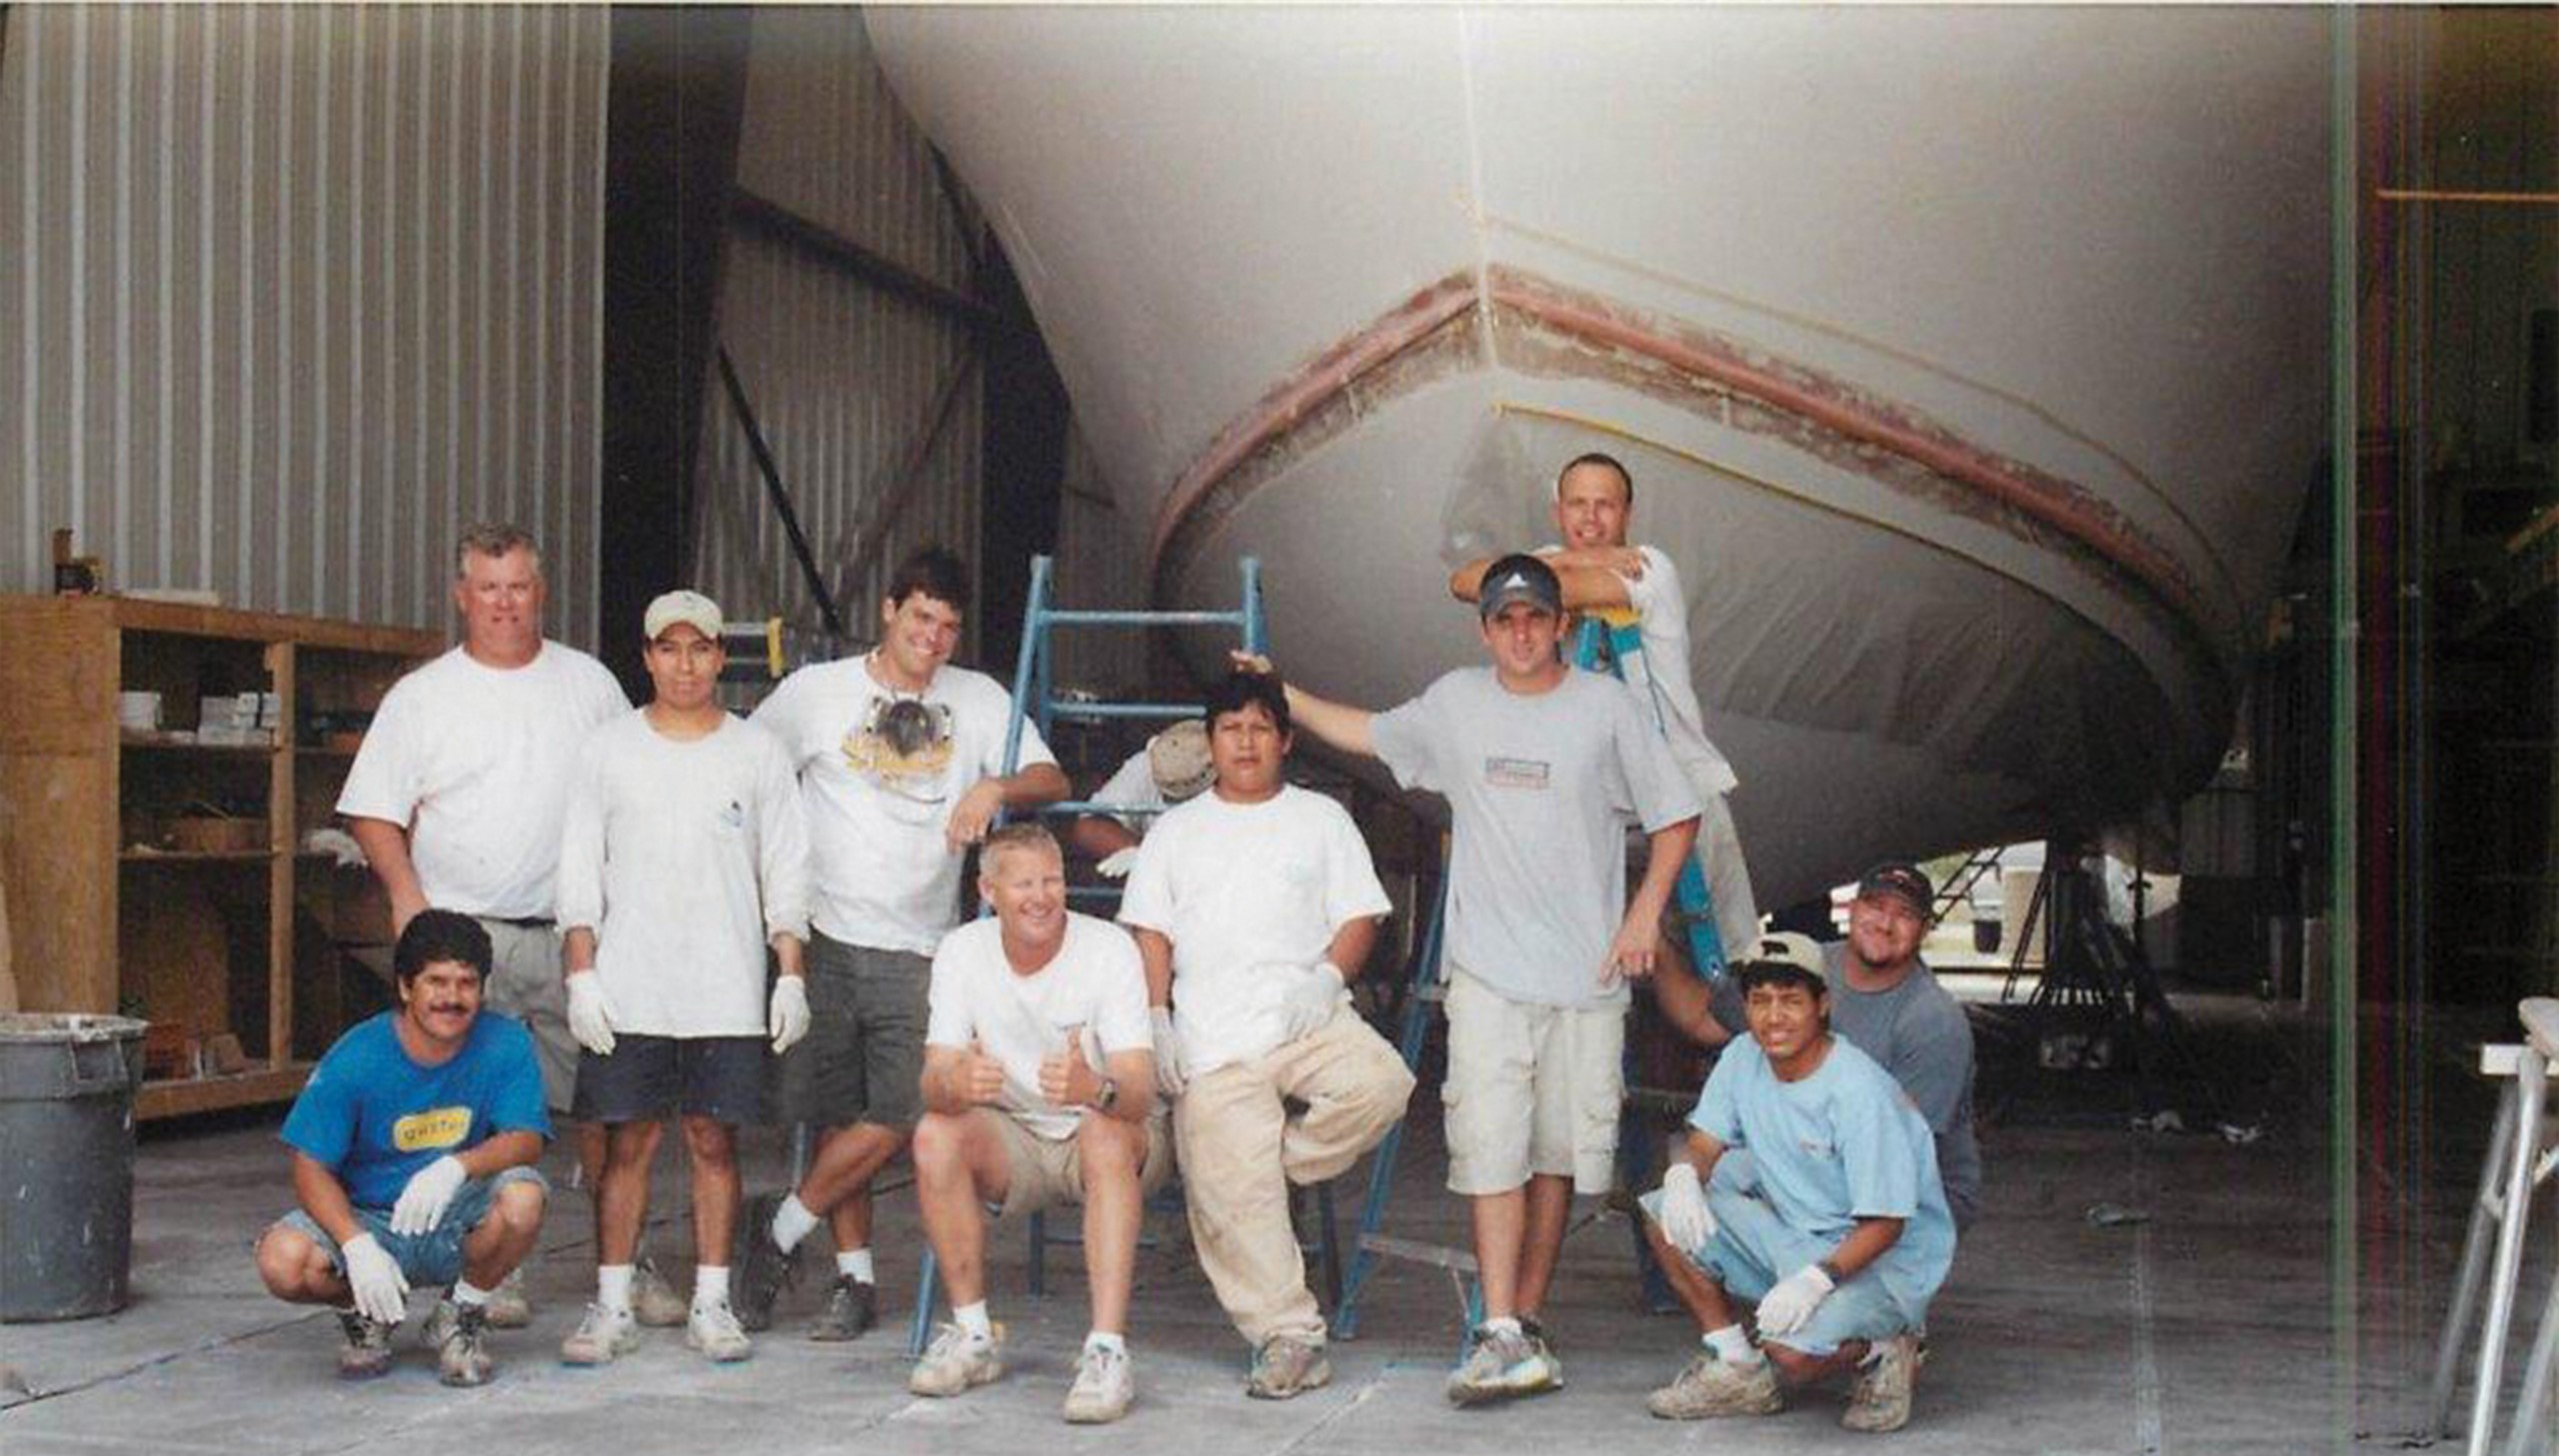 Bayliss Boatworks workers stopping work for a picture in front of a boat bow in a build shed